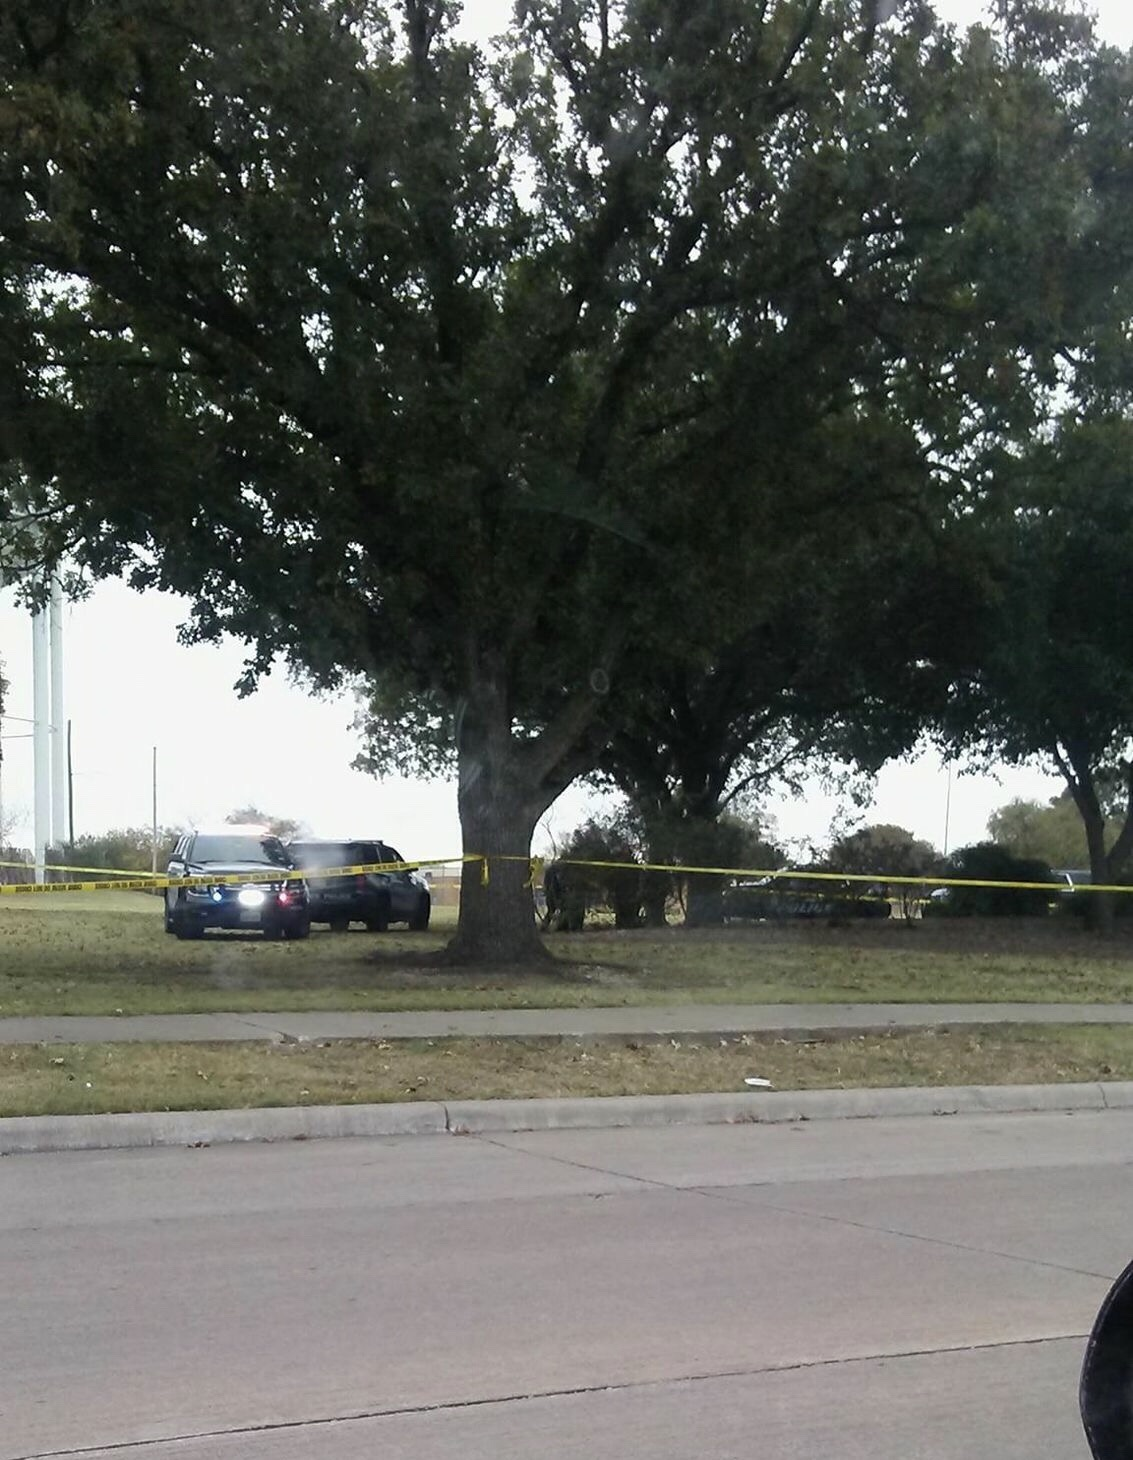 Garland Tx – Body Found Hanging In A Tree – What's in your cup?